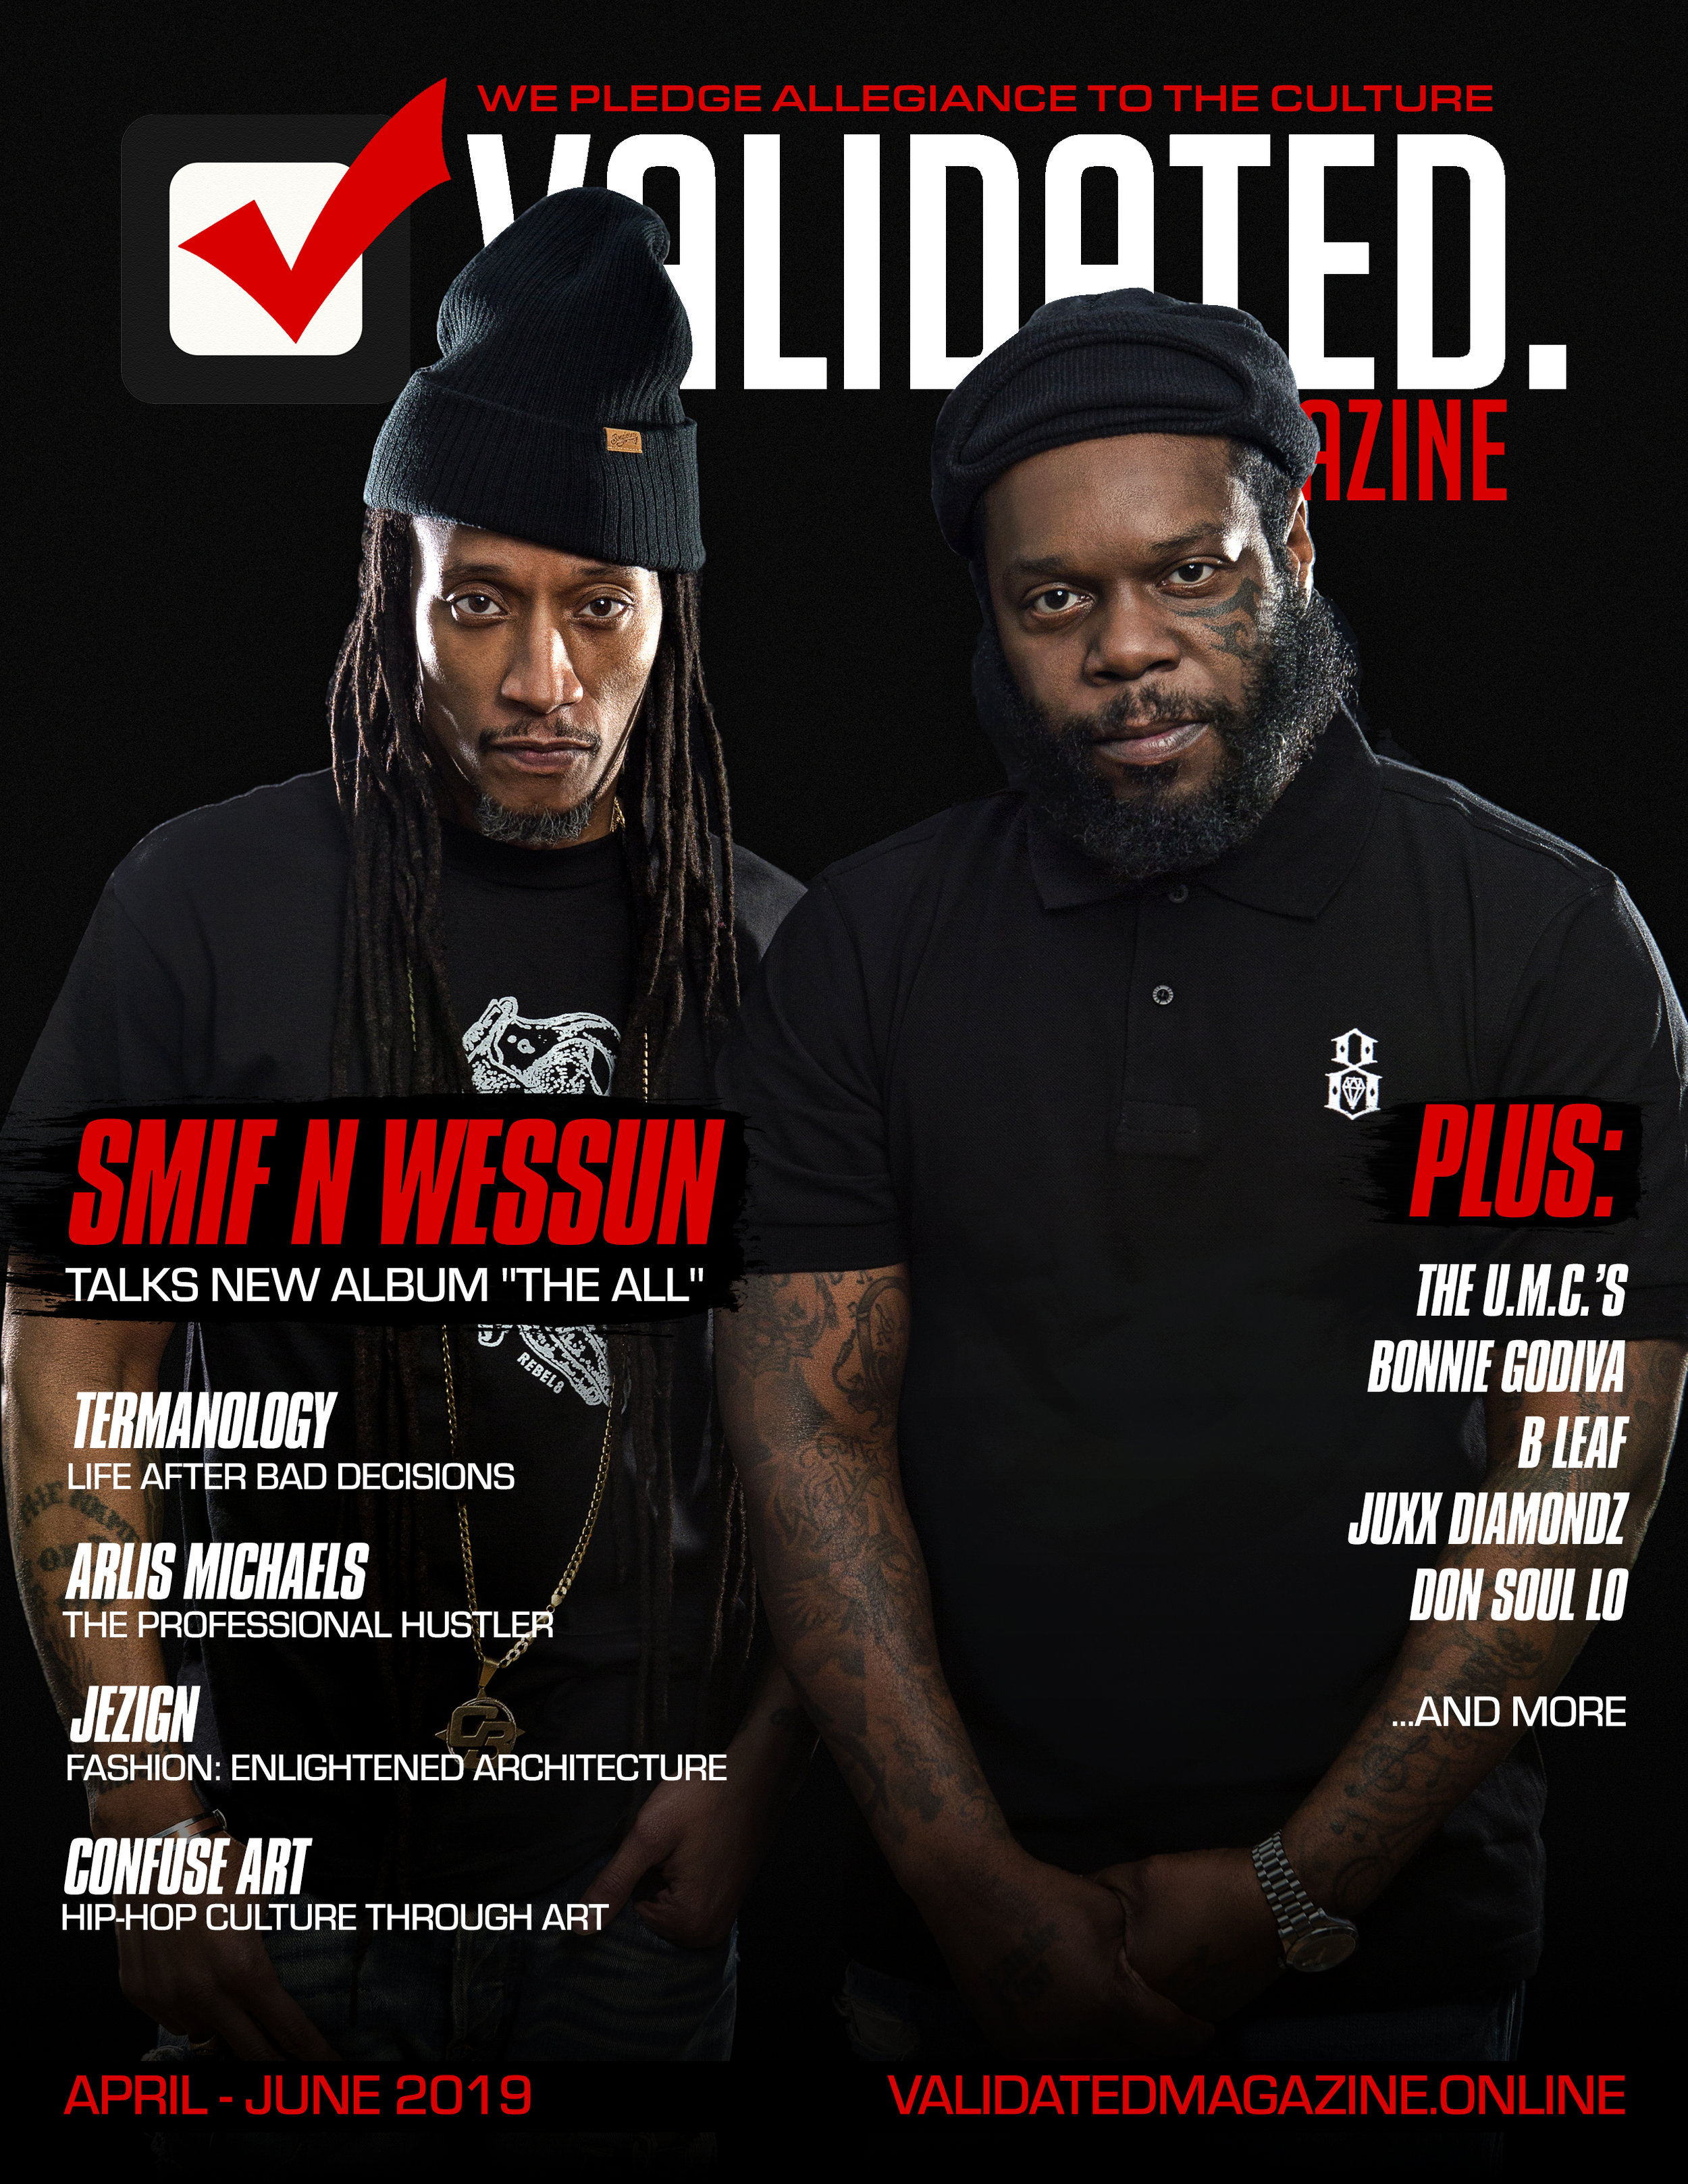 ValidatedMag Smif N Wessun.jpg